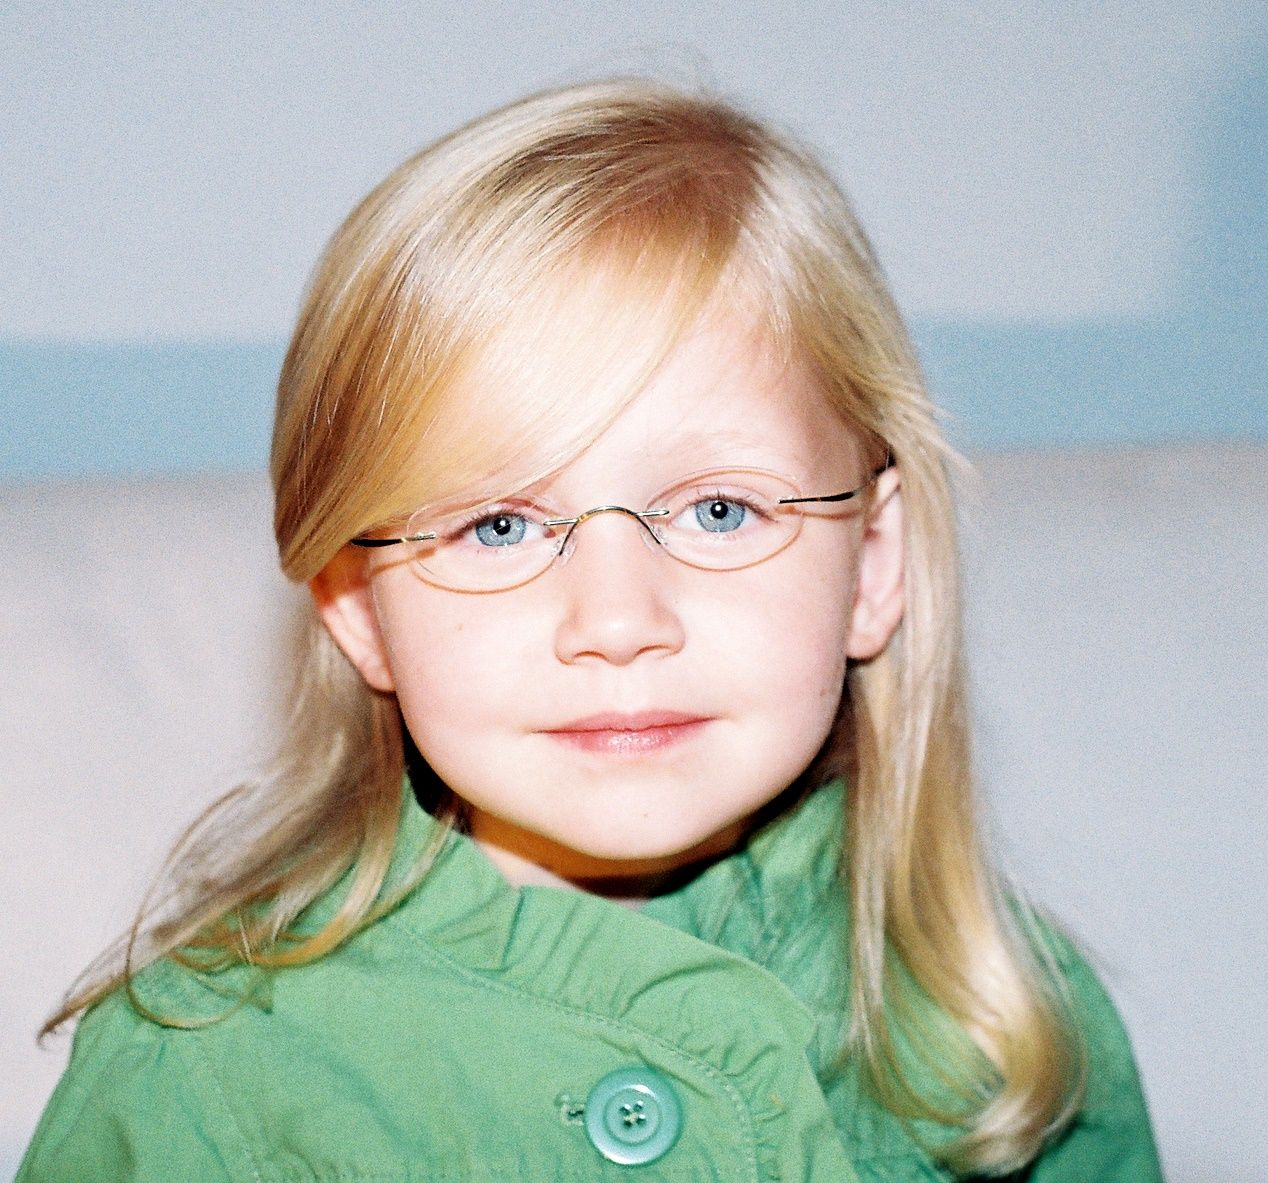 Finding a good fit for your child's glasses, an interview with Bill